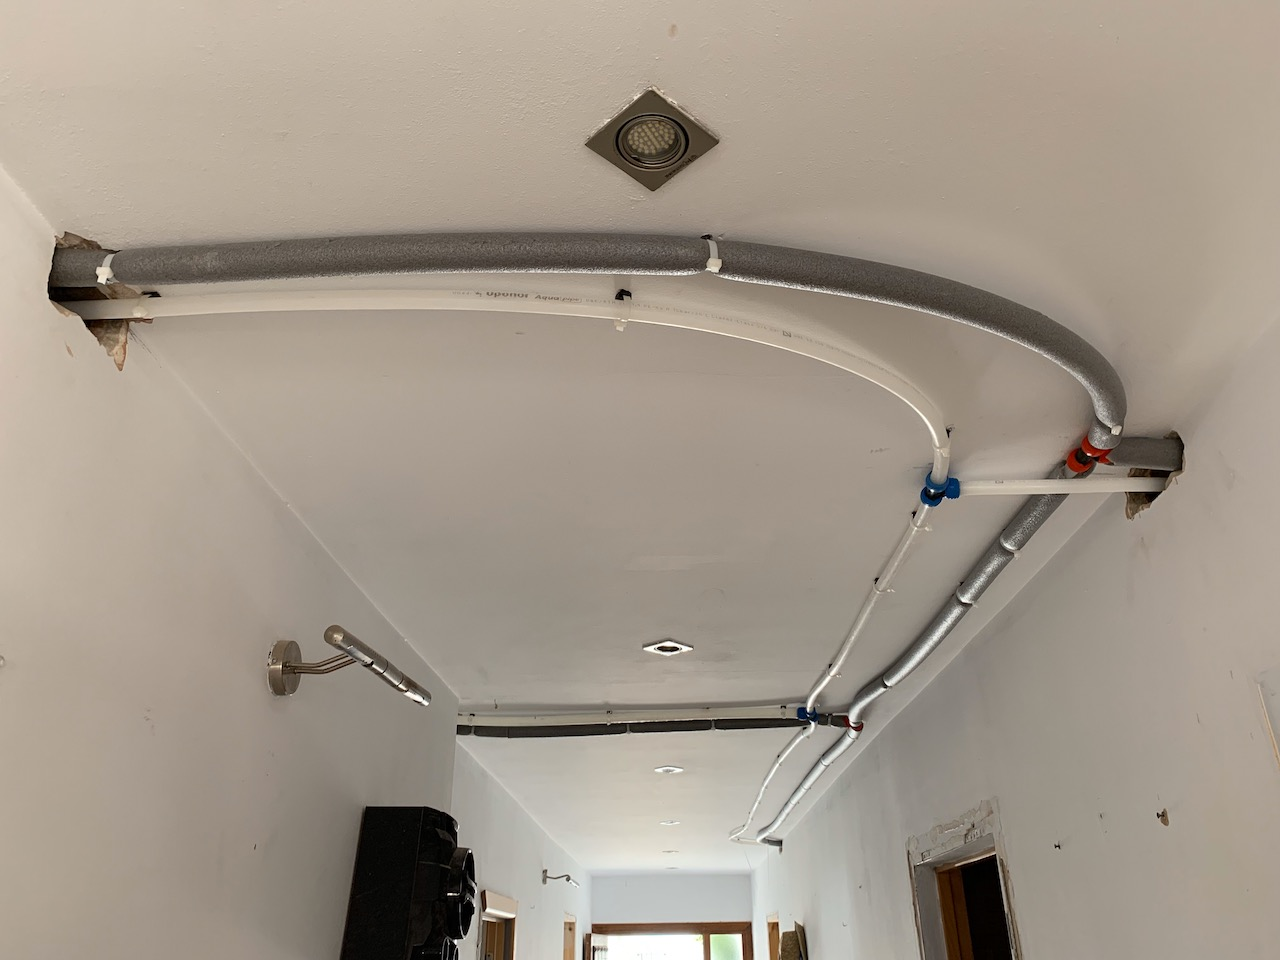 New to us: wiring through the ceilings.